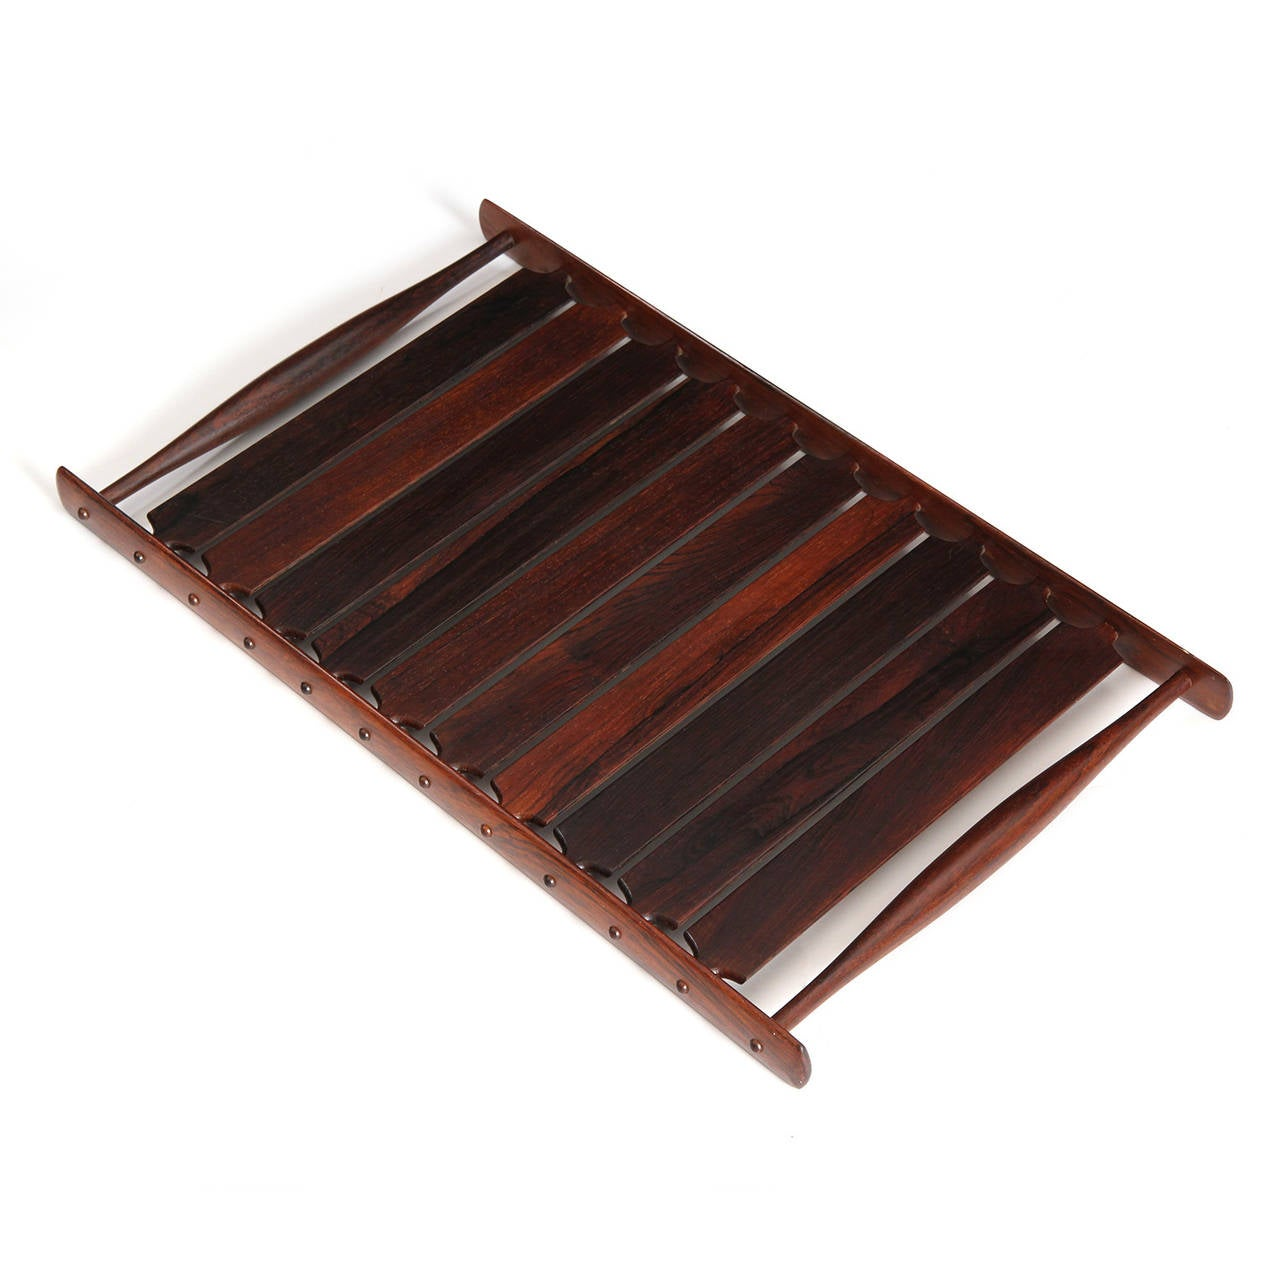 A beautifully constructed Brazilian rosewood serving tray, comprised of ten radius backed slats with fingered tenons mortised through the oval formed side rails, flanked by swollen dowel handles (from the